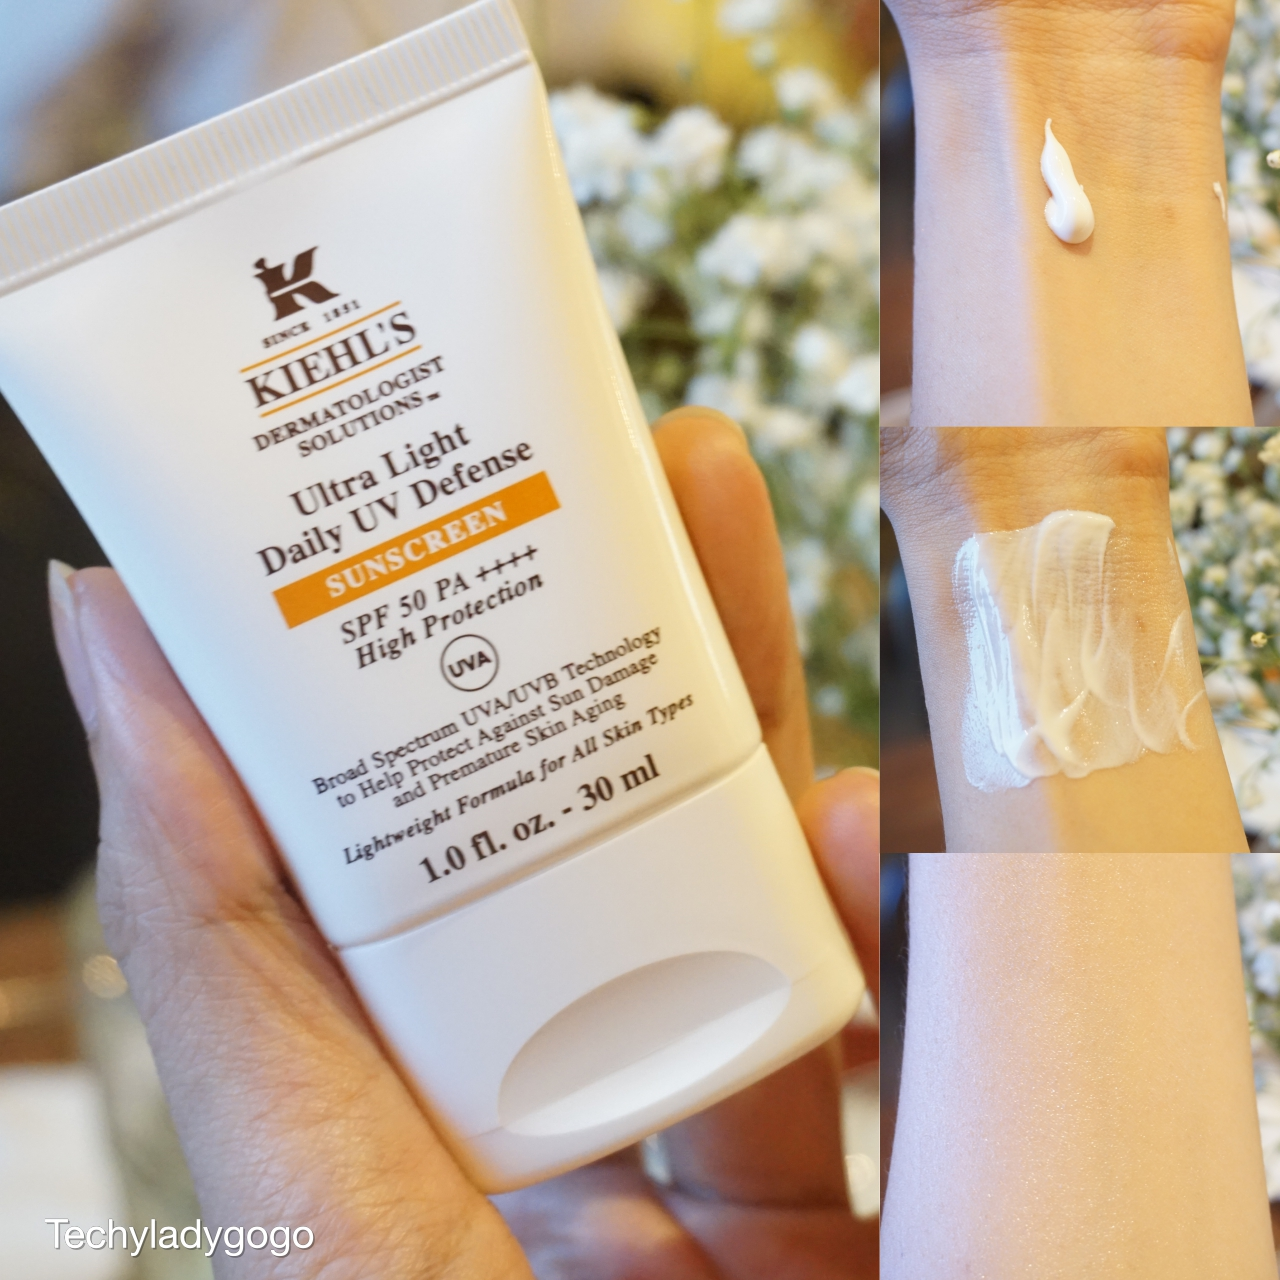 Kiehl's Ultra Light Daily UV Defense SUNSCREEN SPF50 PA++++ (30ml 1,450 บาท)